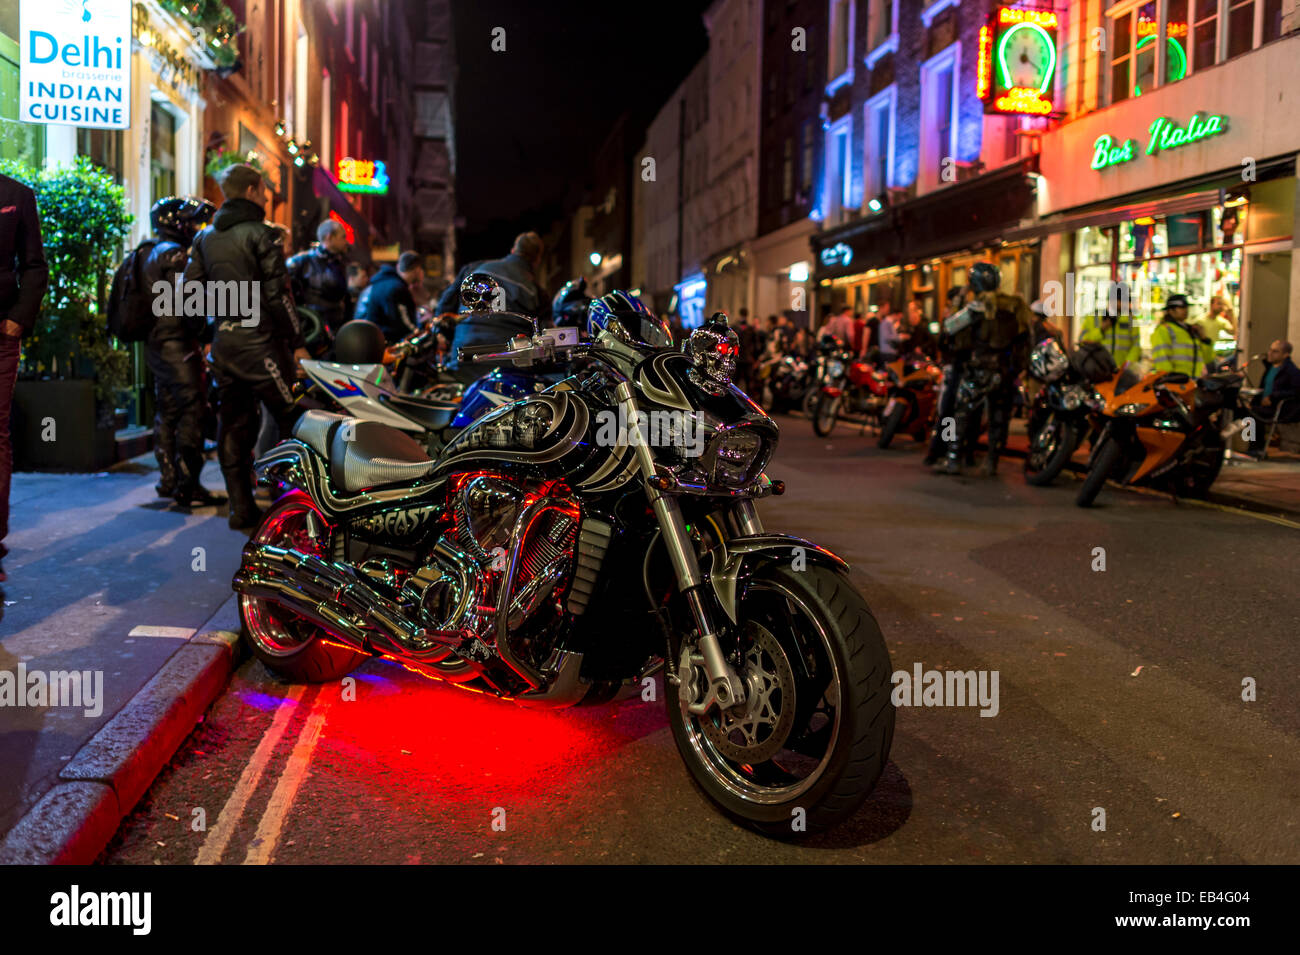 Bikers gather in Soho after midnight with many powerful motorcycles - Stock Image